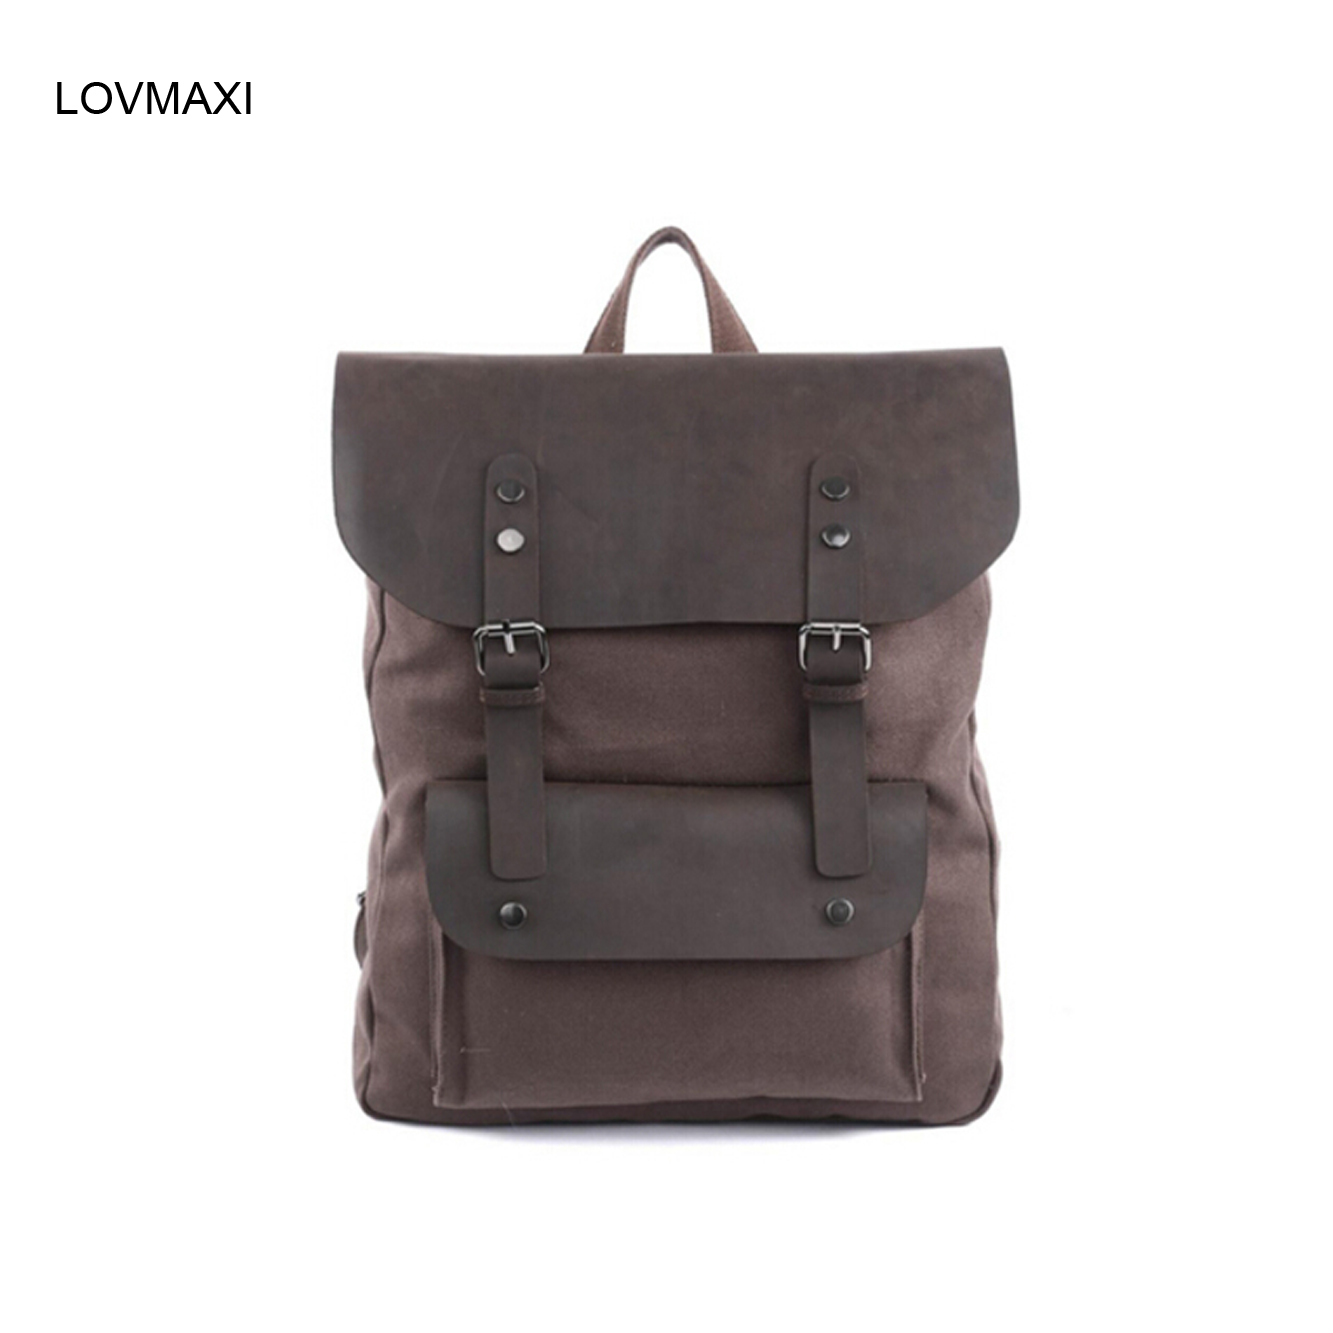 Canvas BACKPACKS Leather Causal Vintage Large Backpack Travel Bags Daily Backpacks